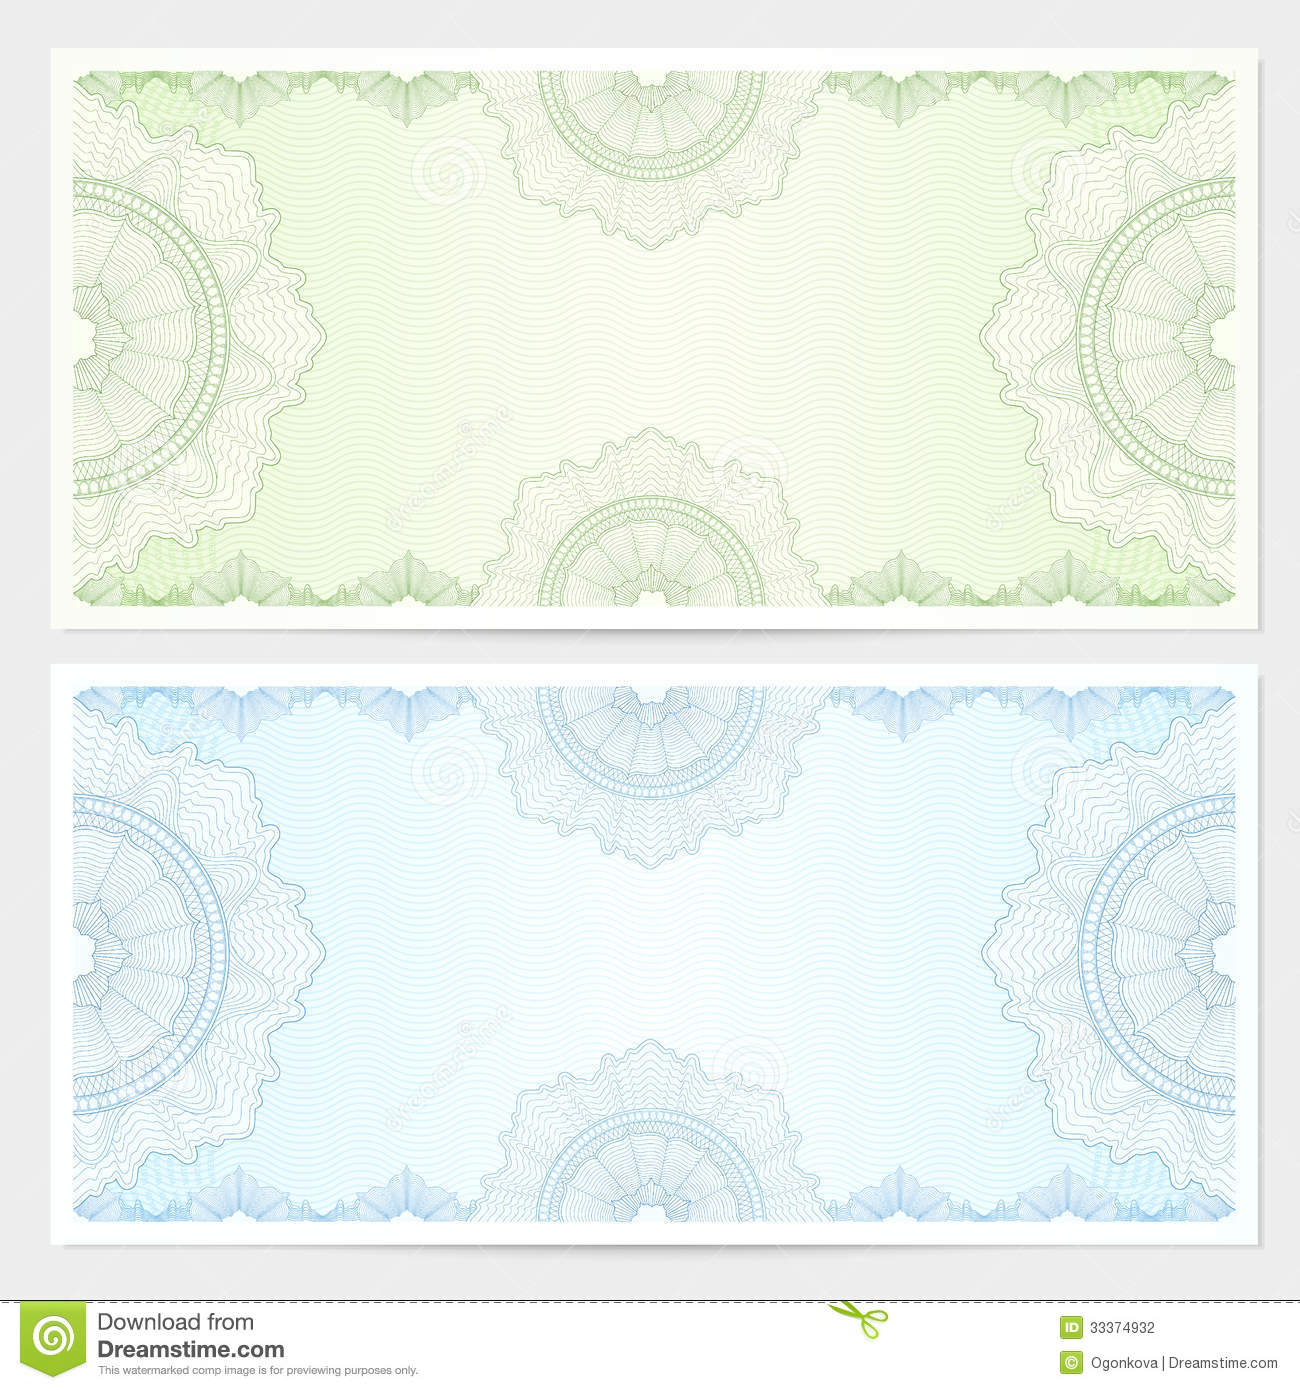 thank you note template money best pray thank you note template money thank you note samples thank you wording examples gift certificate